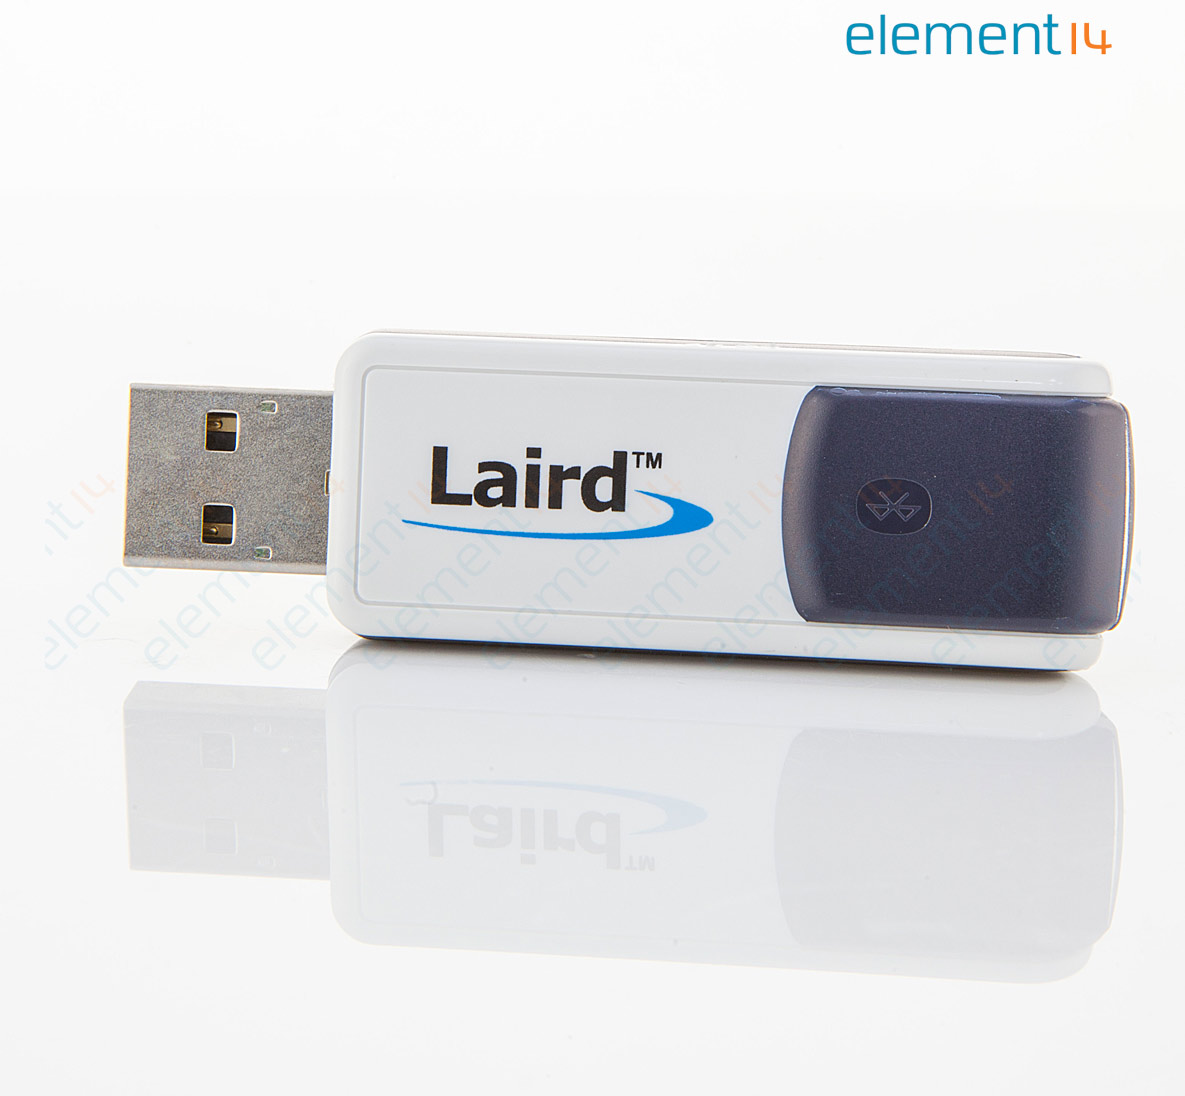 BL620 US LAIRD Bluetooth USB Dongle V40 Central Mode